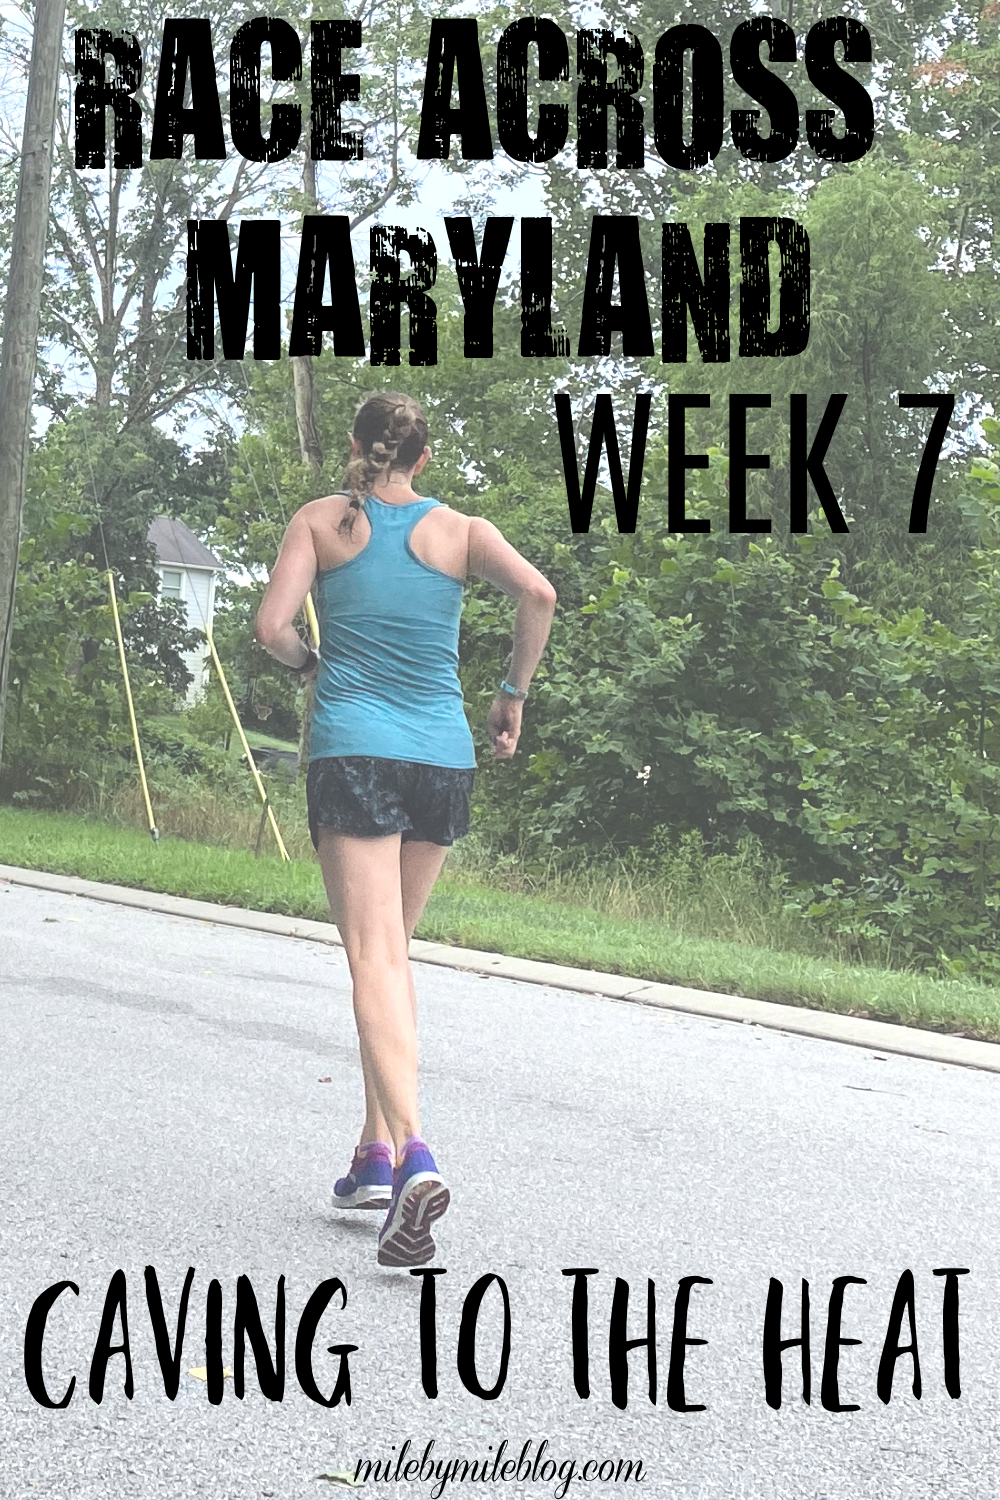 This was week 7 of the Race across Maryland and it was all about caving to the heat. After weeks and weeks of heat and humidity I finally gave in and moved some of my runs to the treadmill. I'm also talking about my July mileage, August goals, and how I'm feeling after this summer challenge.